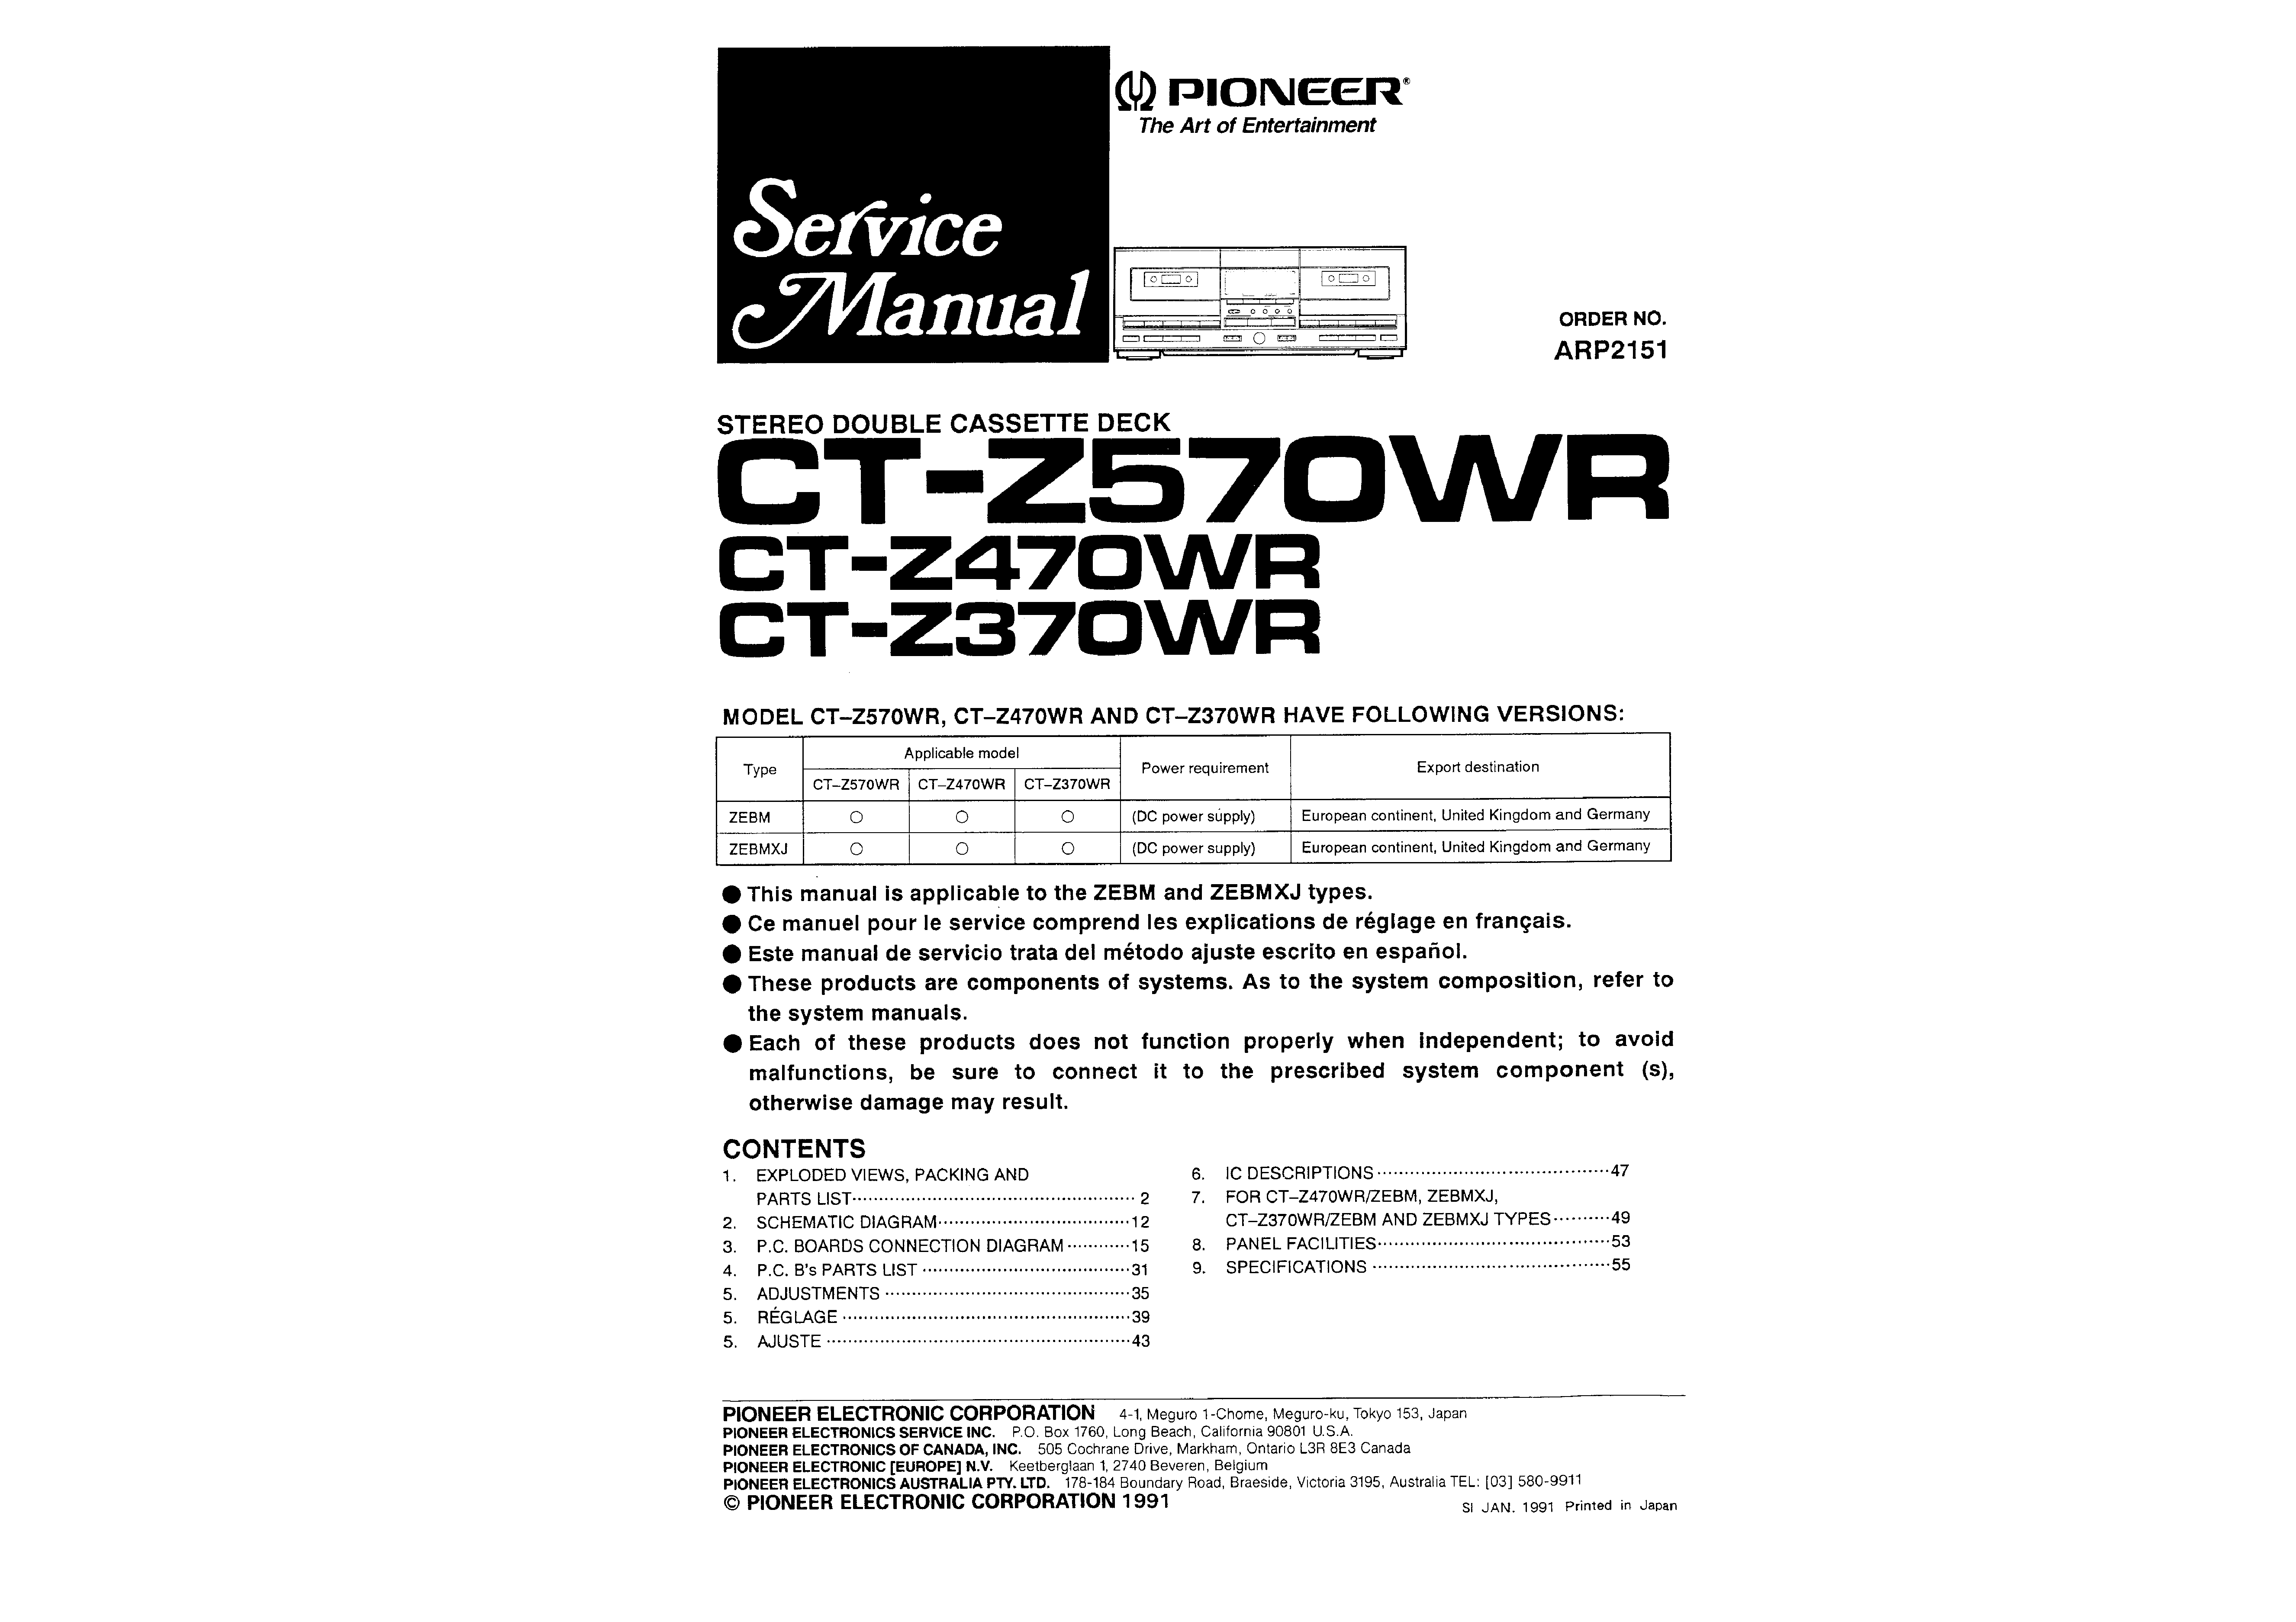 pioneer ct f1250 service manual